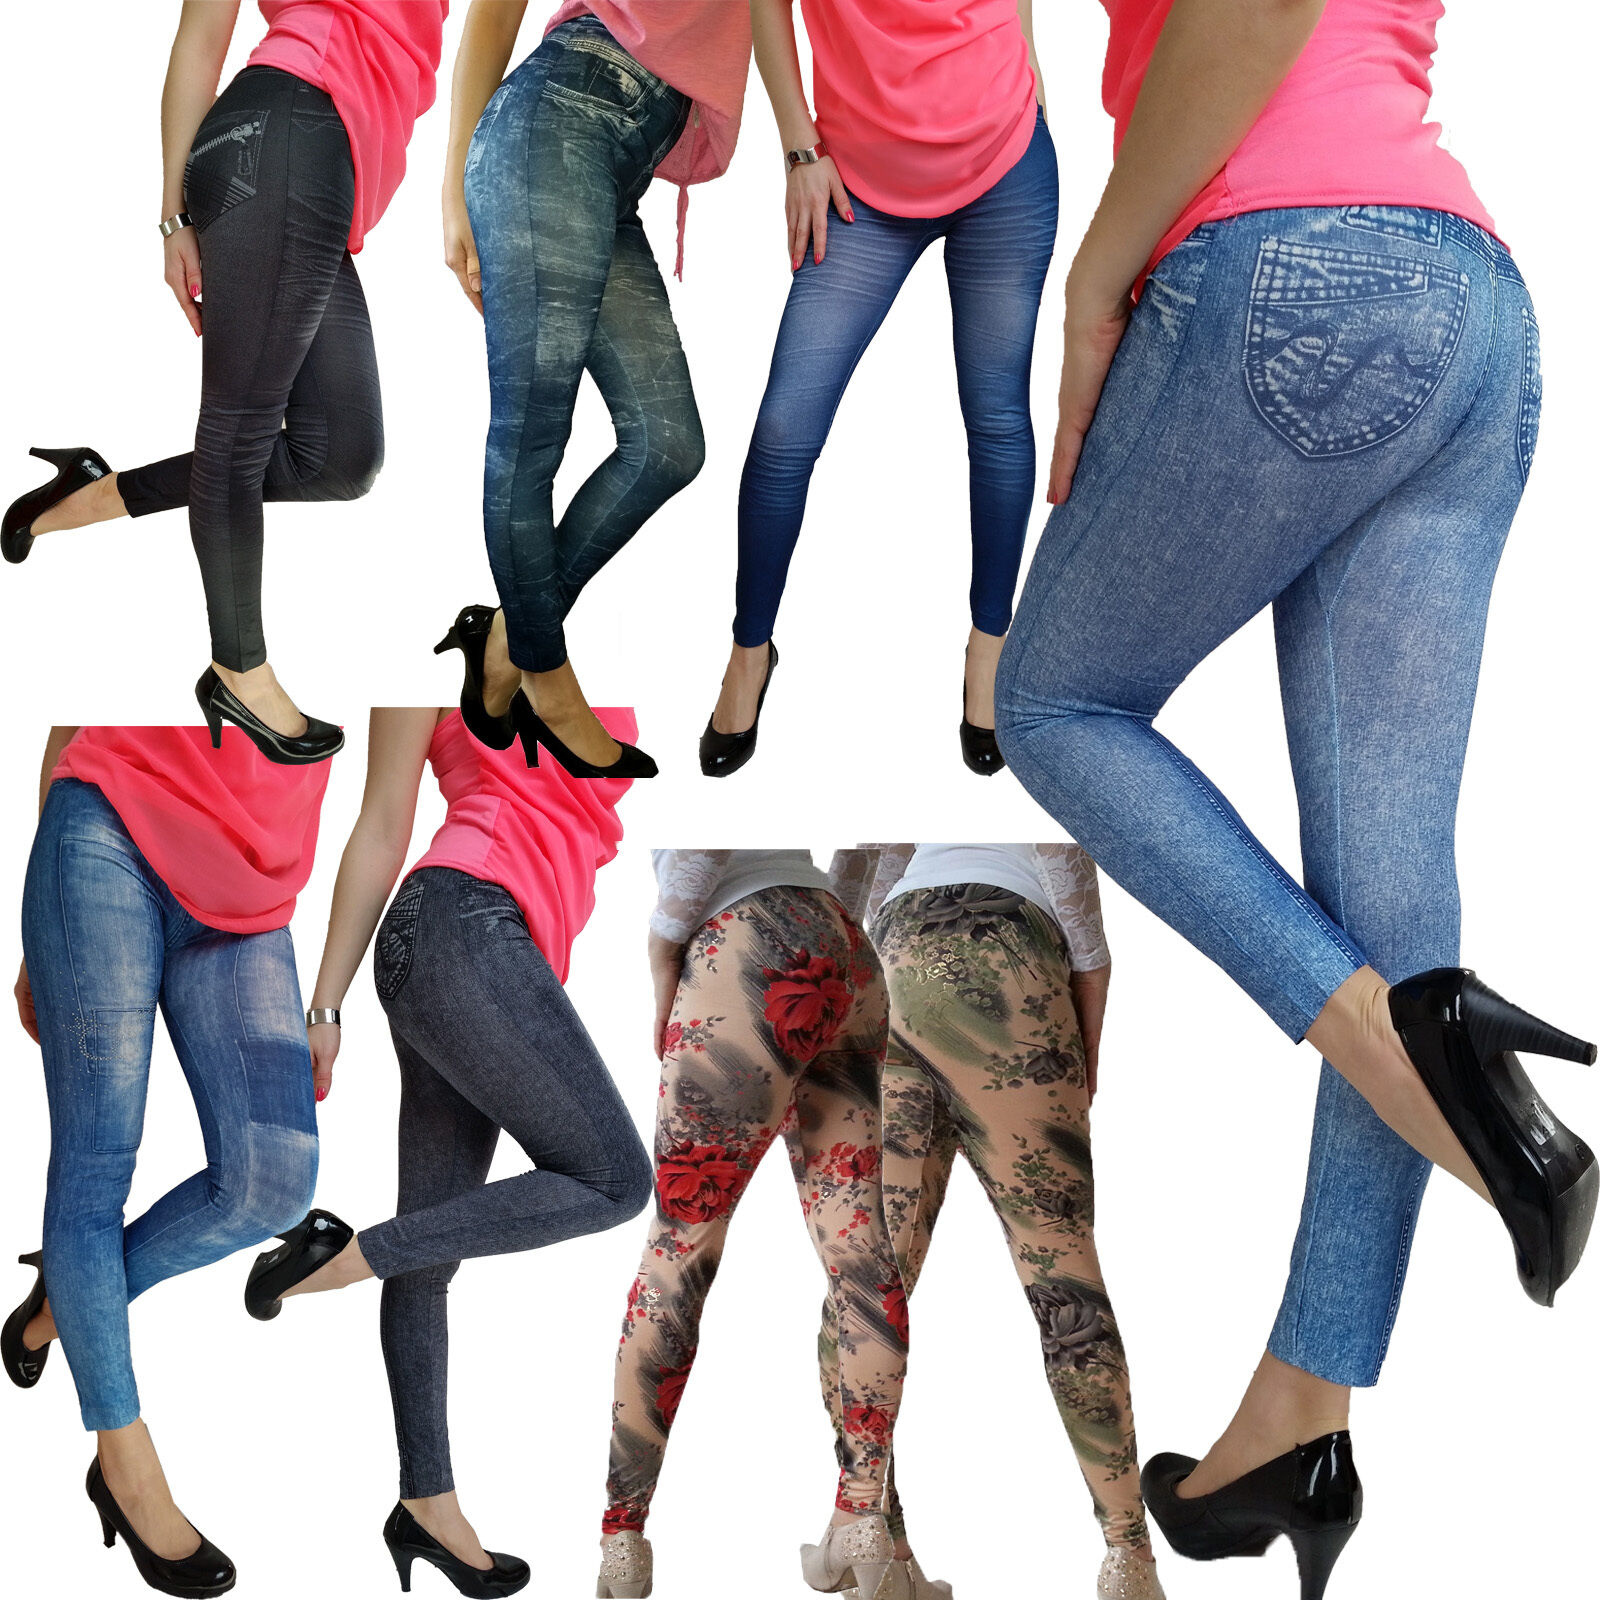 damen m dchen leggings hose jeansoptik destroyed jeggings. Black Bedroom Furniture Sets. Home Design Ideas